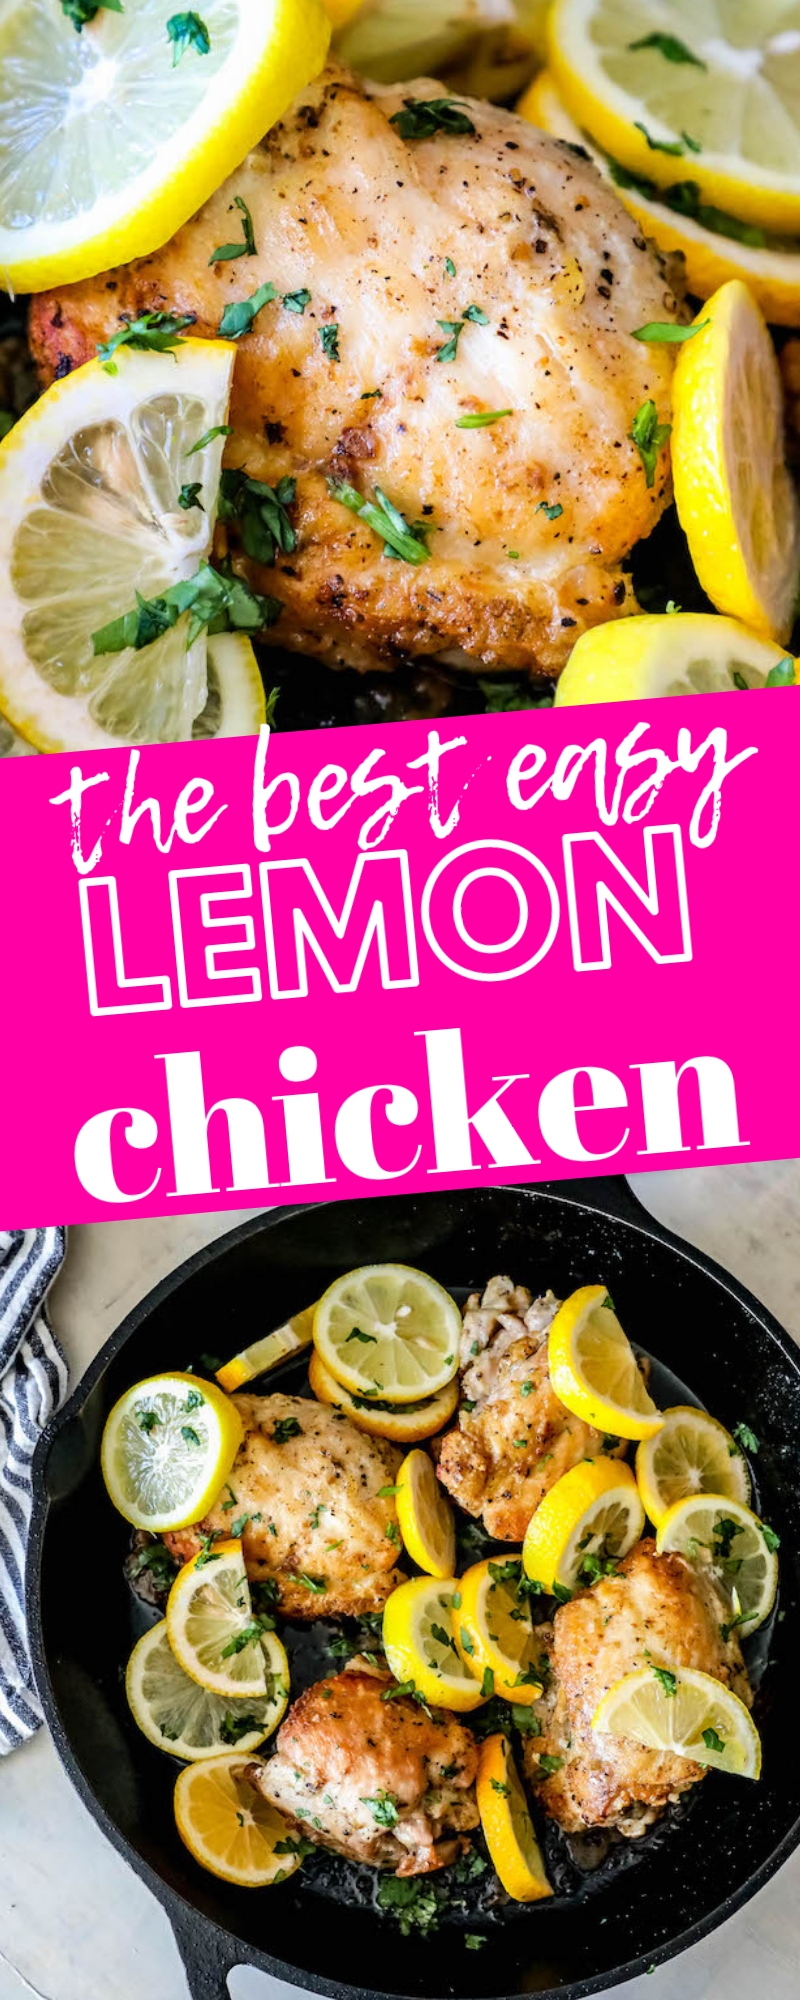 skillets with baked chicken thighs and sliced lemons